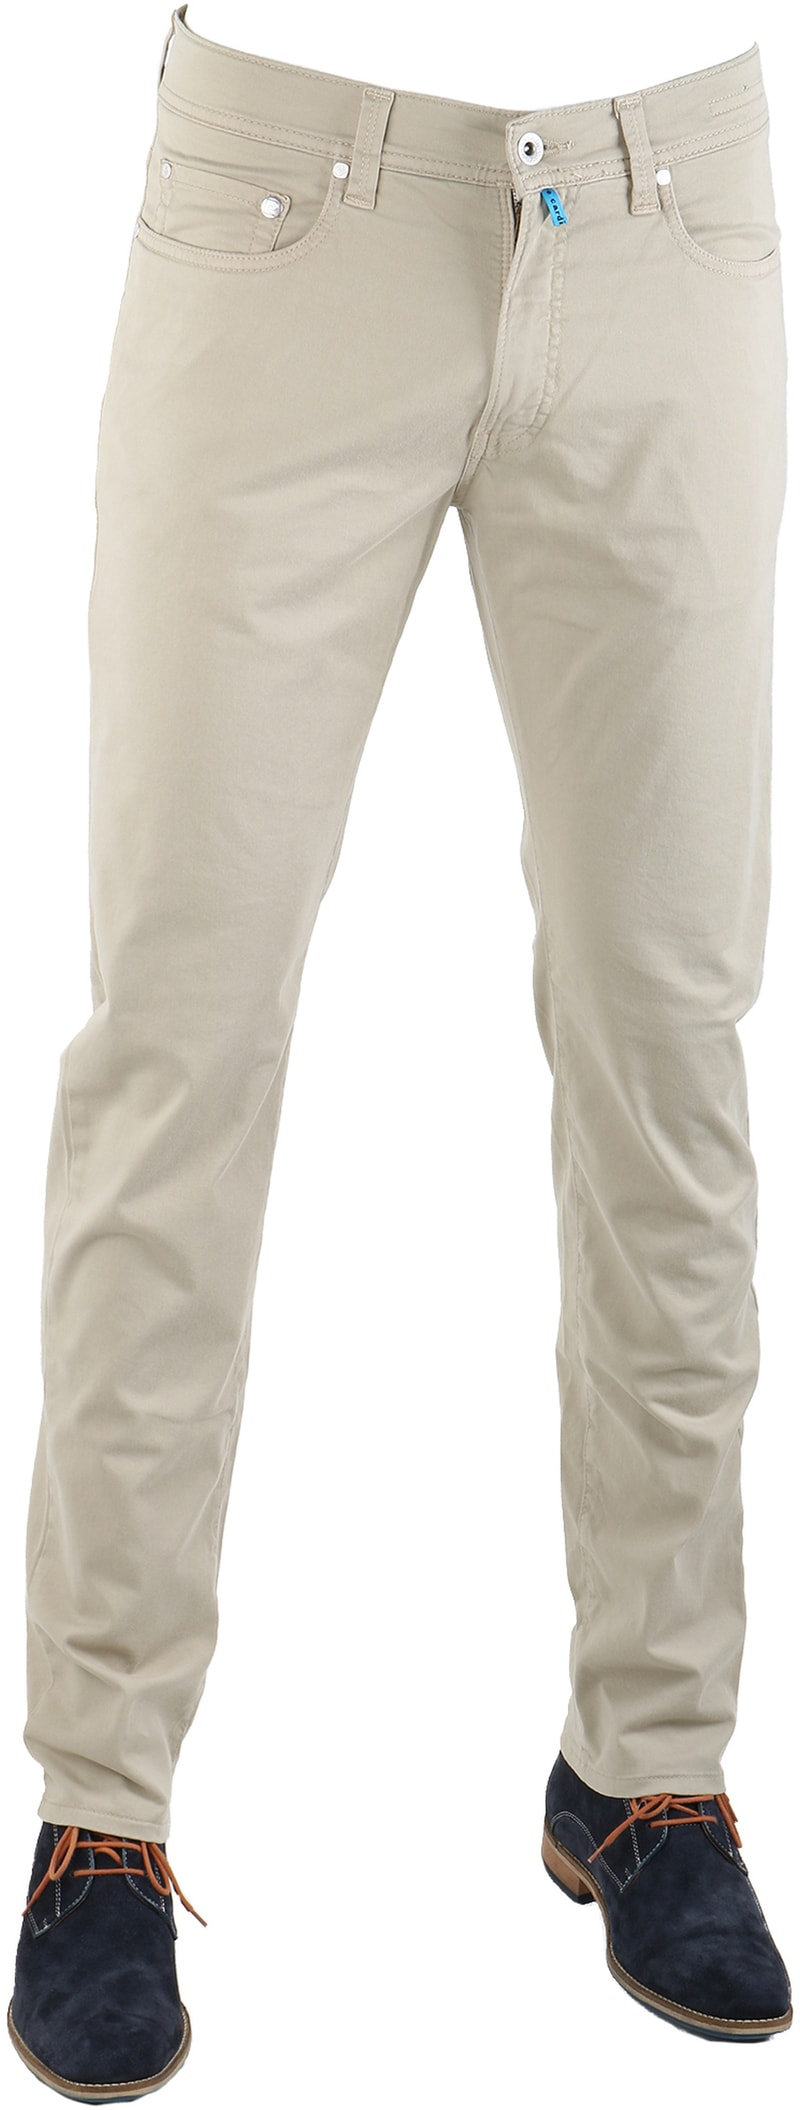 Pierre Cardin Lyon Broek Future Flex 25  online bestellen | Suitable